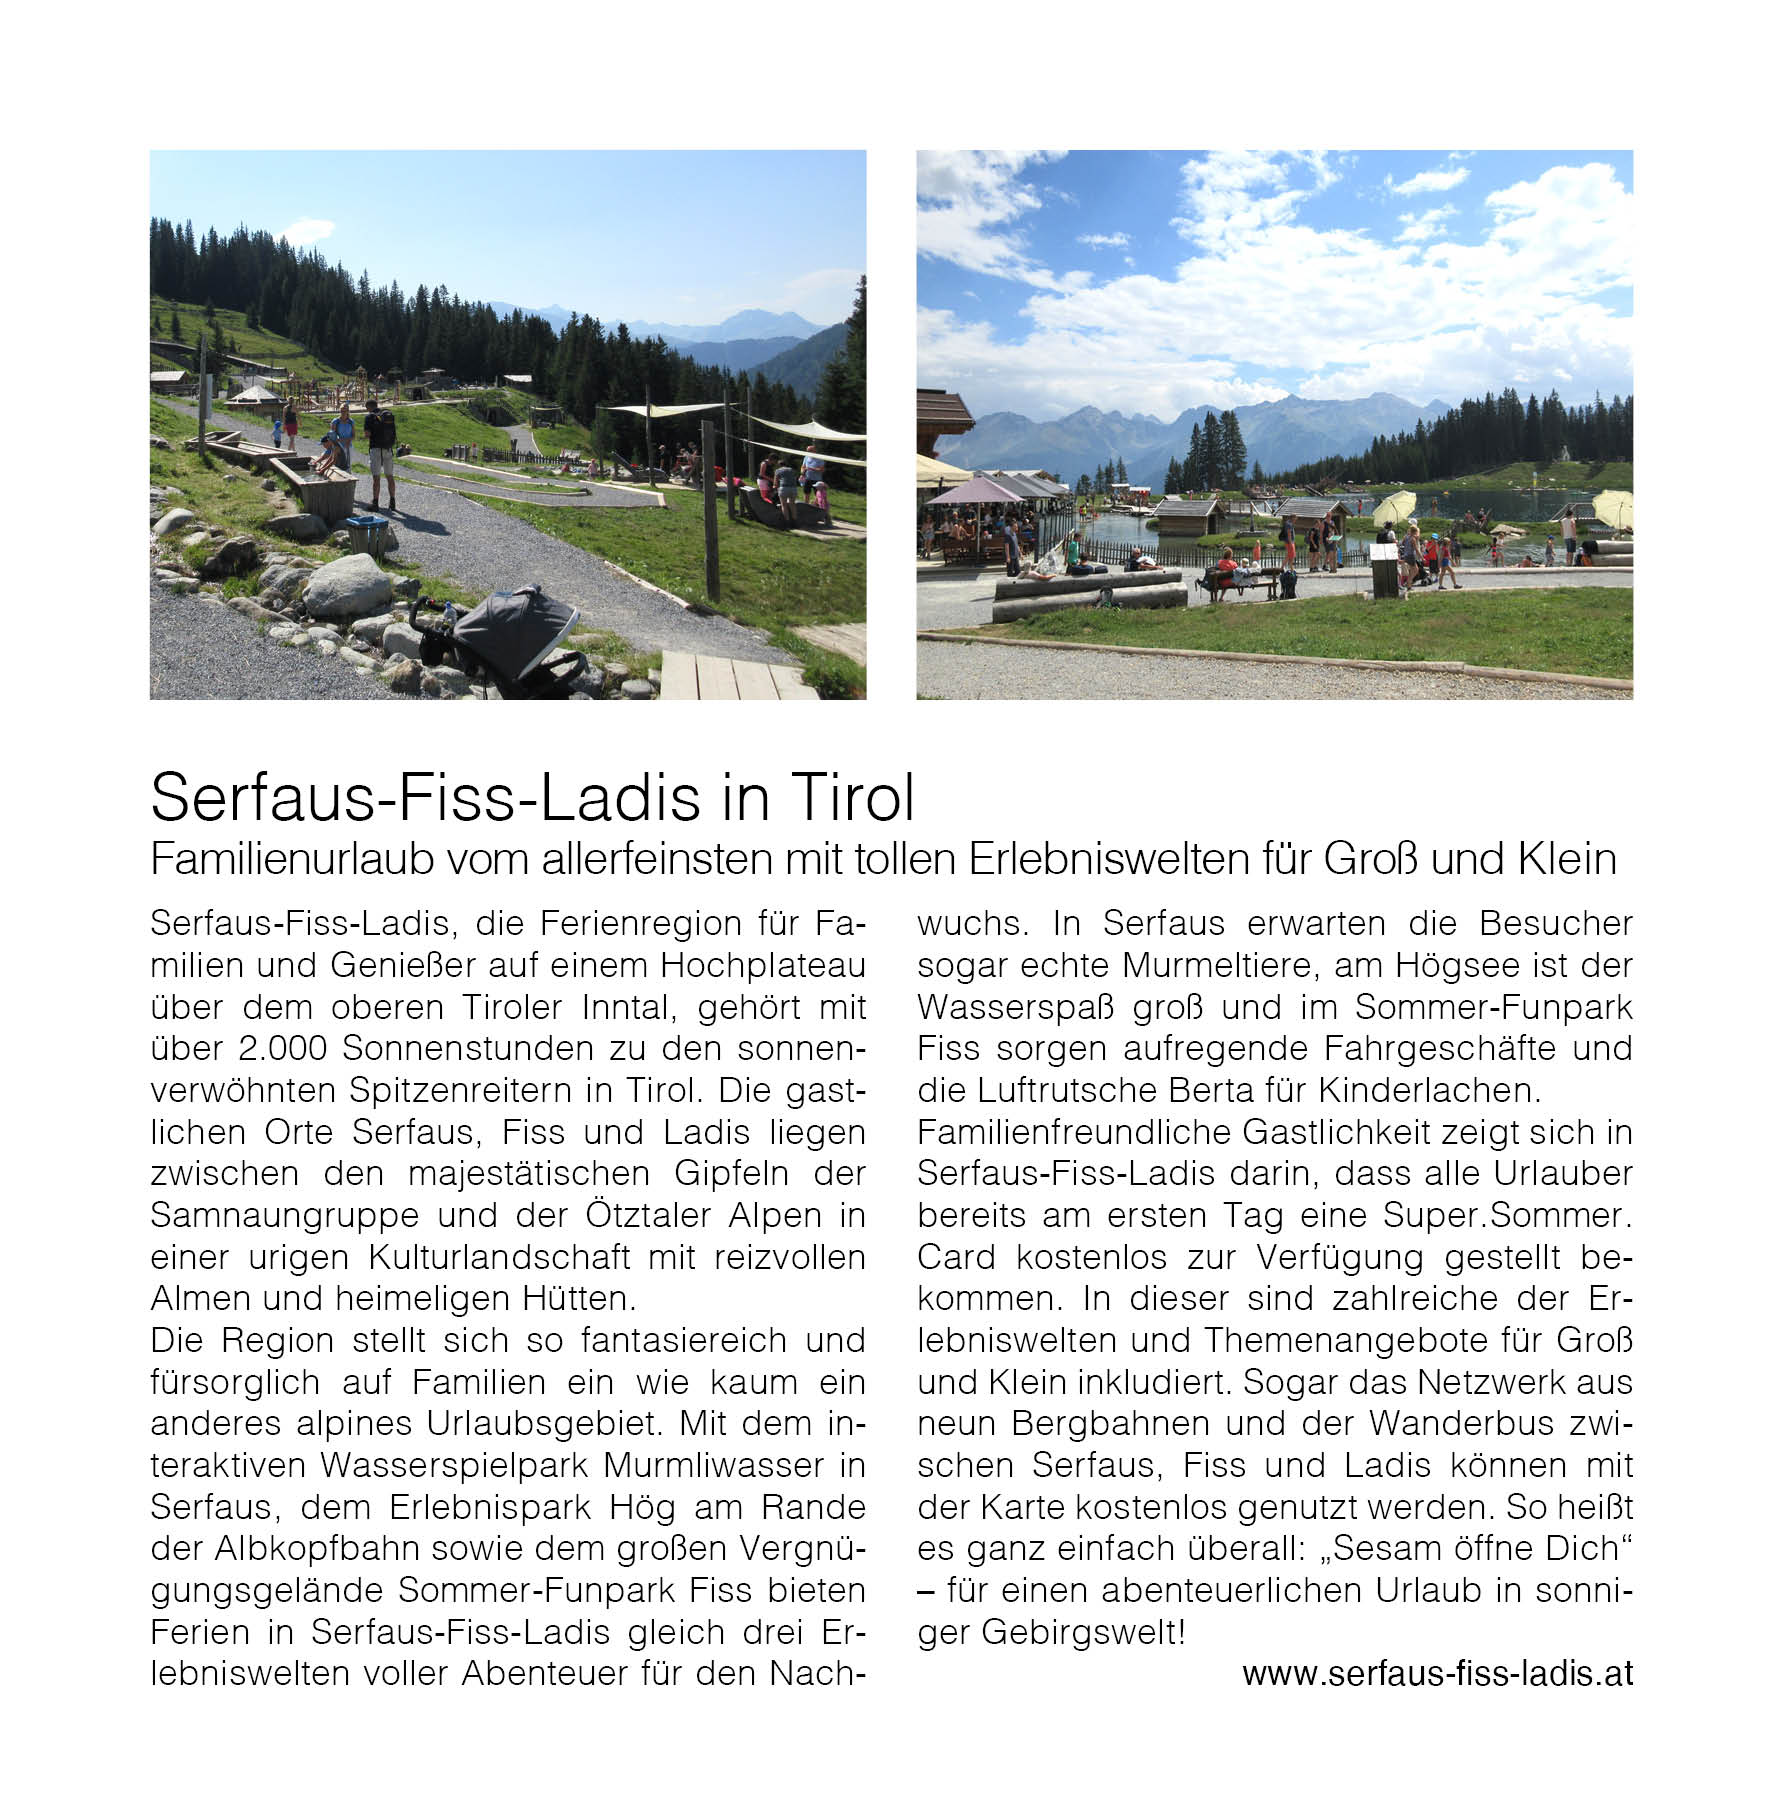 http://www.berge-exclusiv.de/wp-content/uploads/Pocket-Guide-18041643.jpg